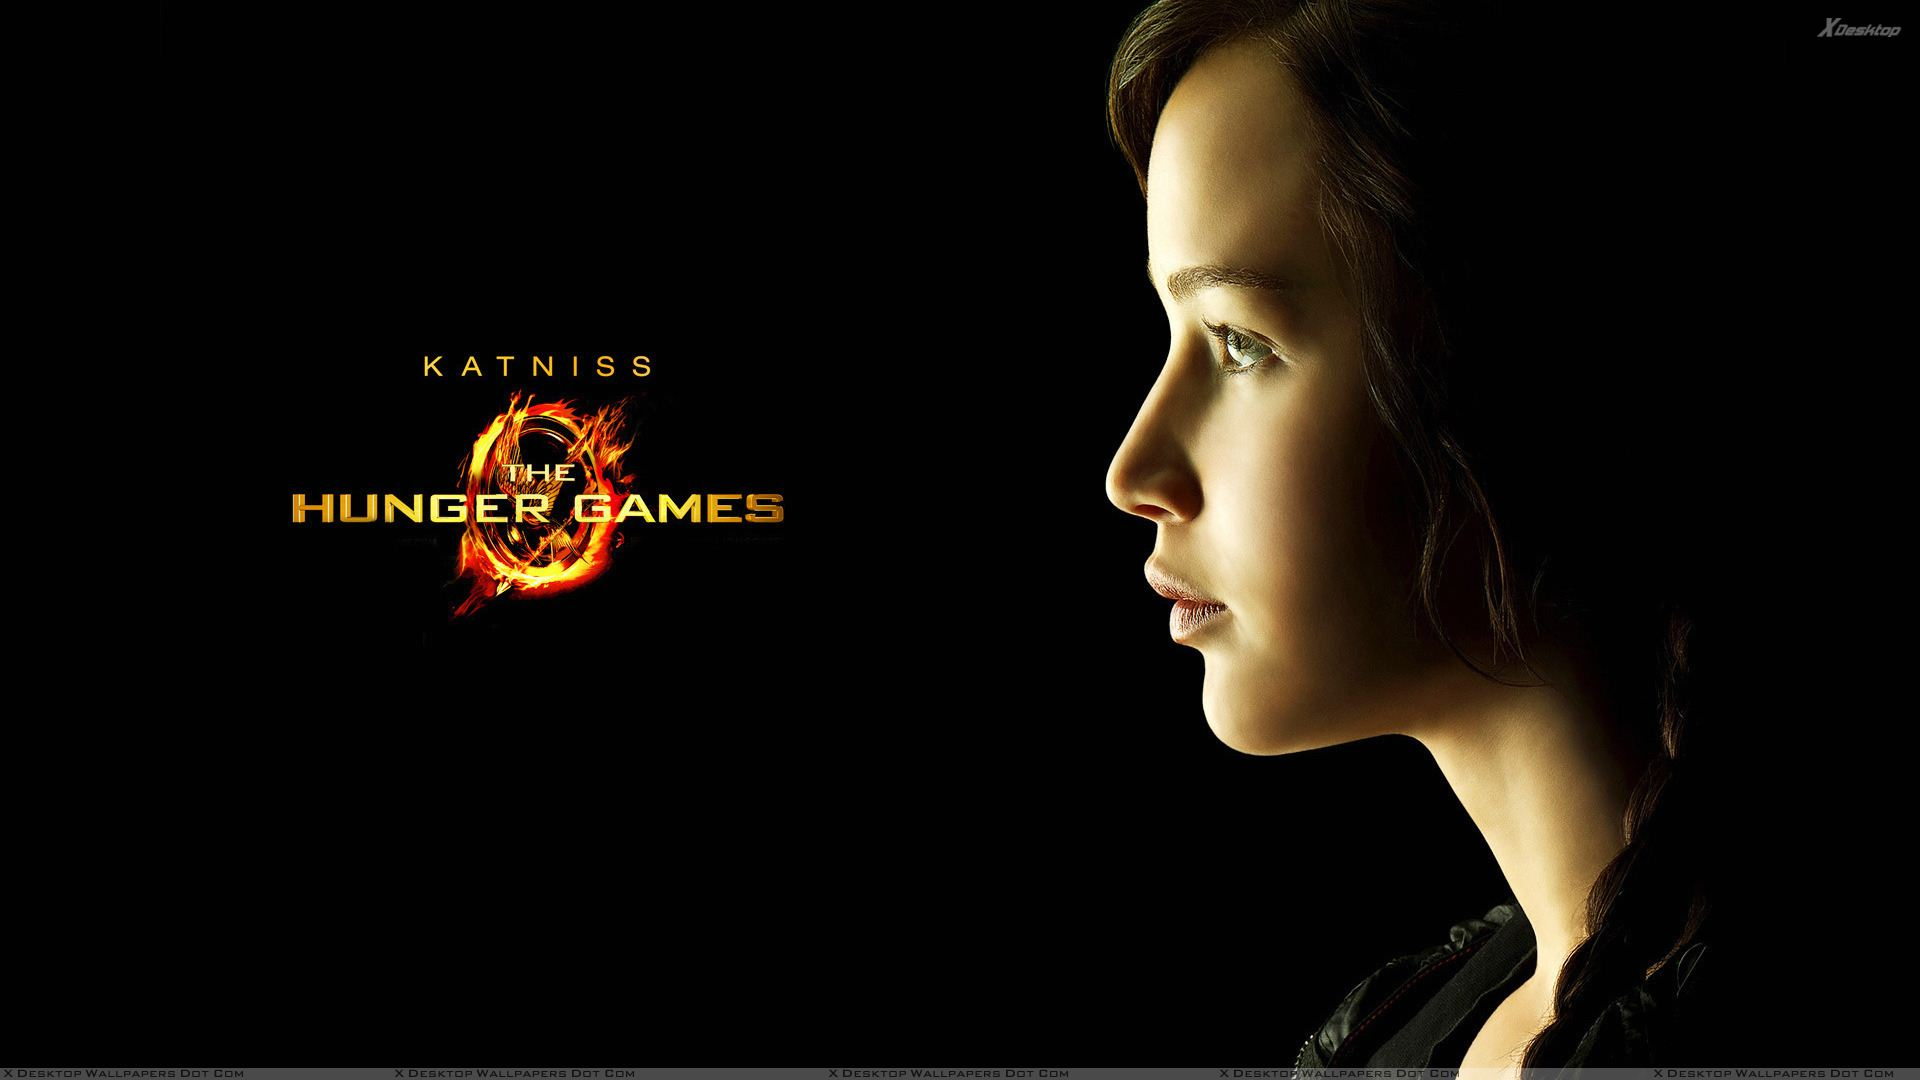 The hunger games jennifer lawrence as katniss everdeen side face you are viewing wallpaper titled the hunger games voltagebd Choice Image